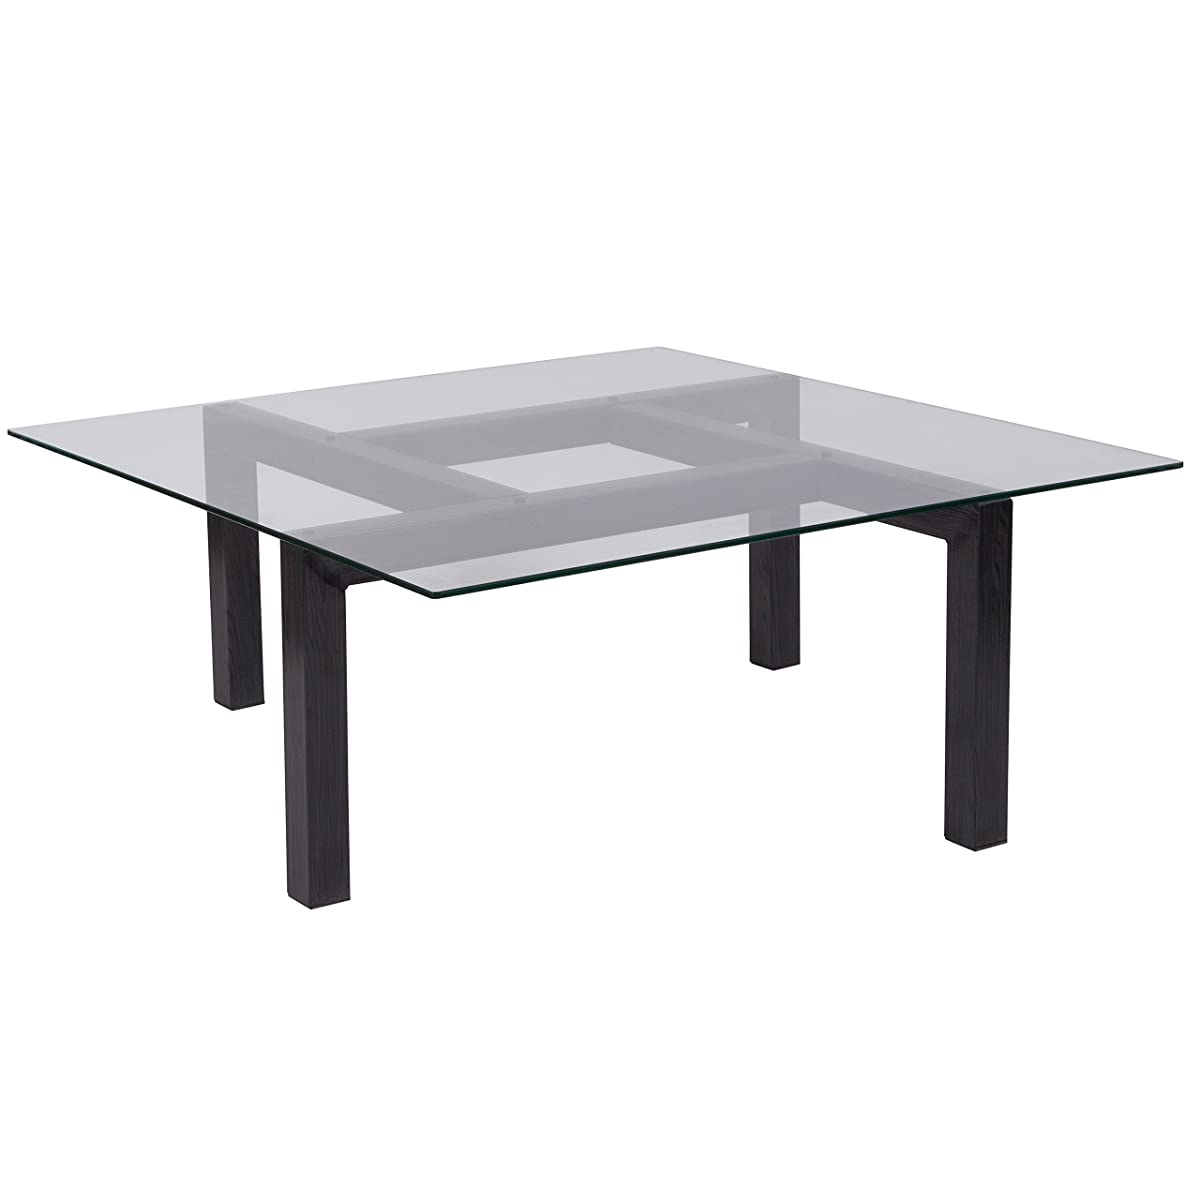 Flash Furniture Overton Collection Glass Coffee Table with Black Wood Grain Finish Legs